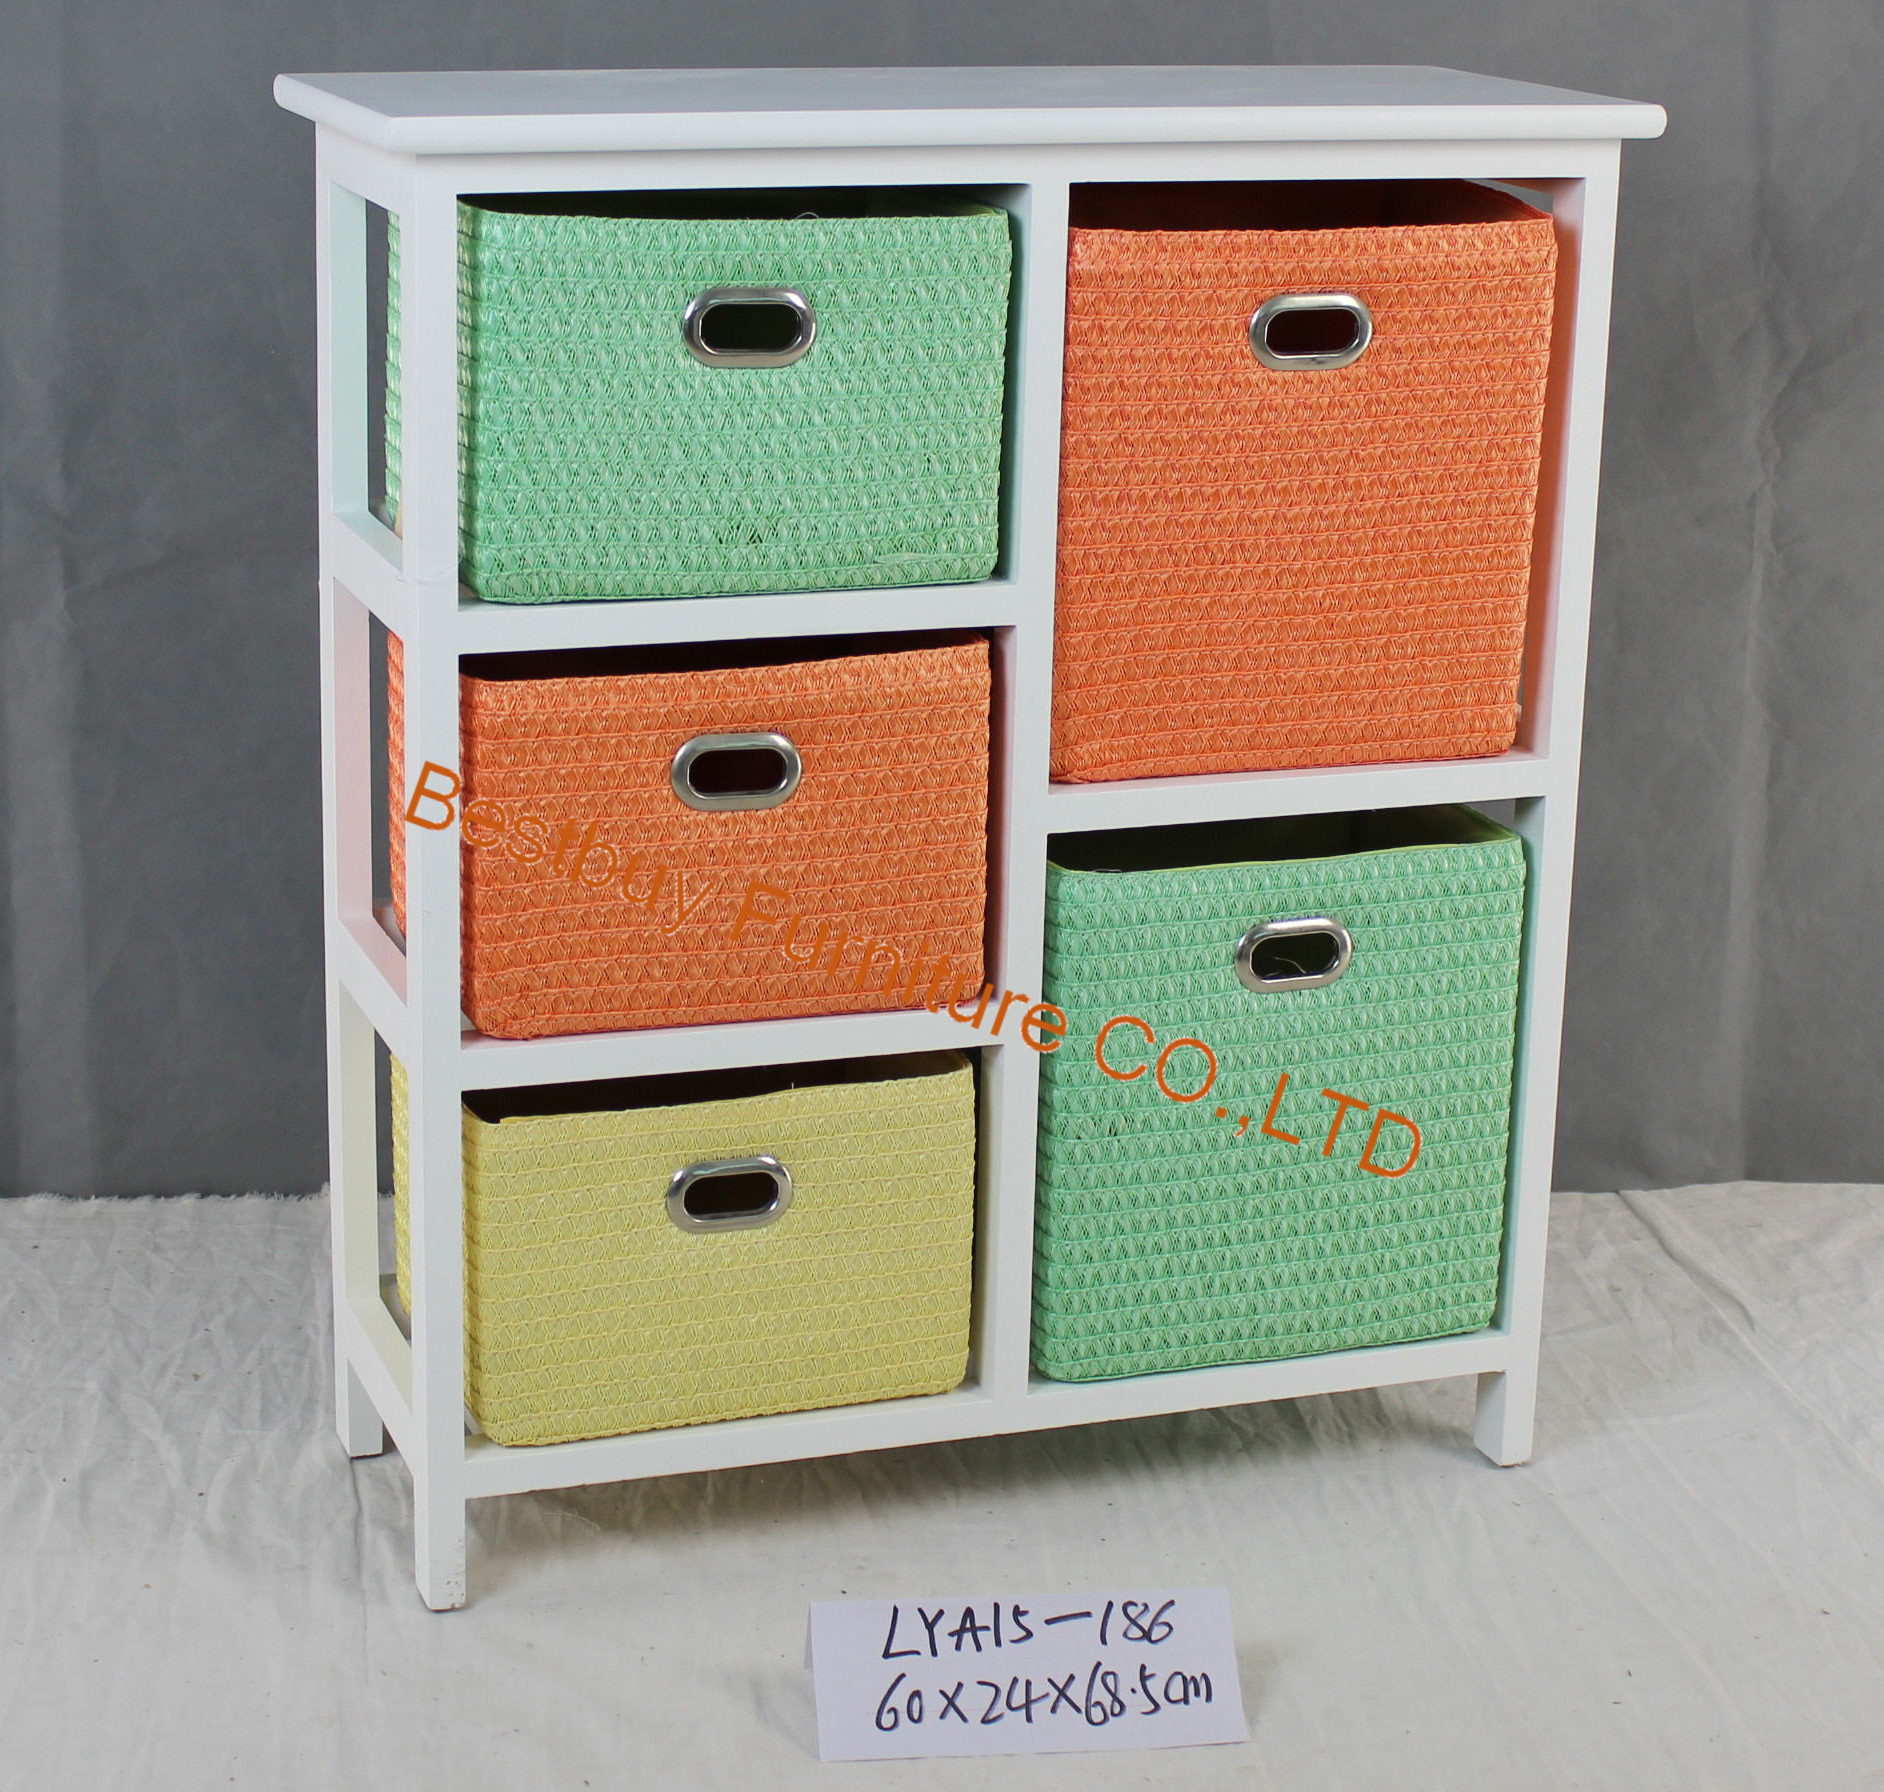 White 3+2 drawer cabinet with extra strong rattan baskets for bathroom, livingroom etc.